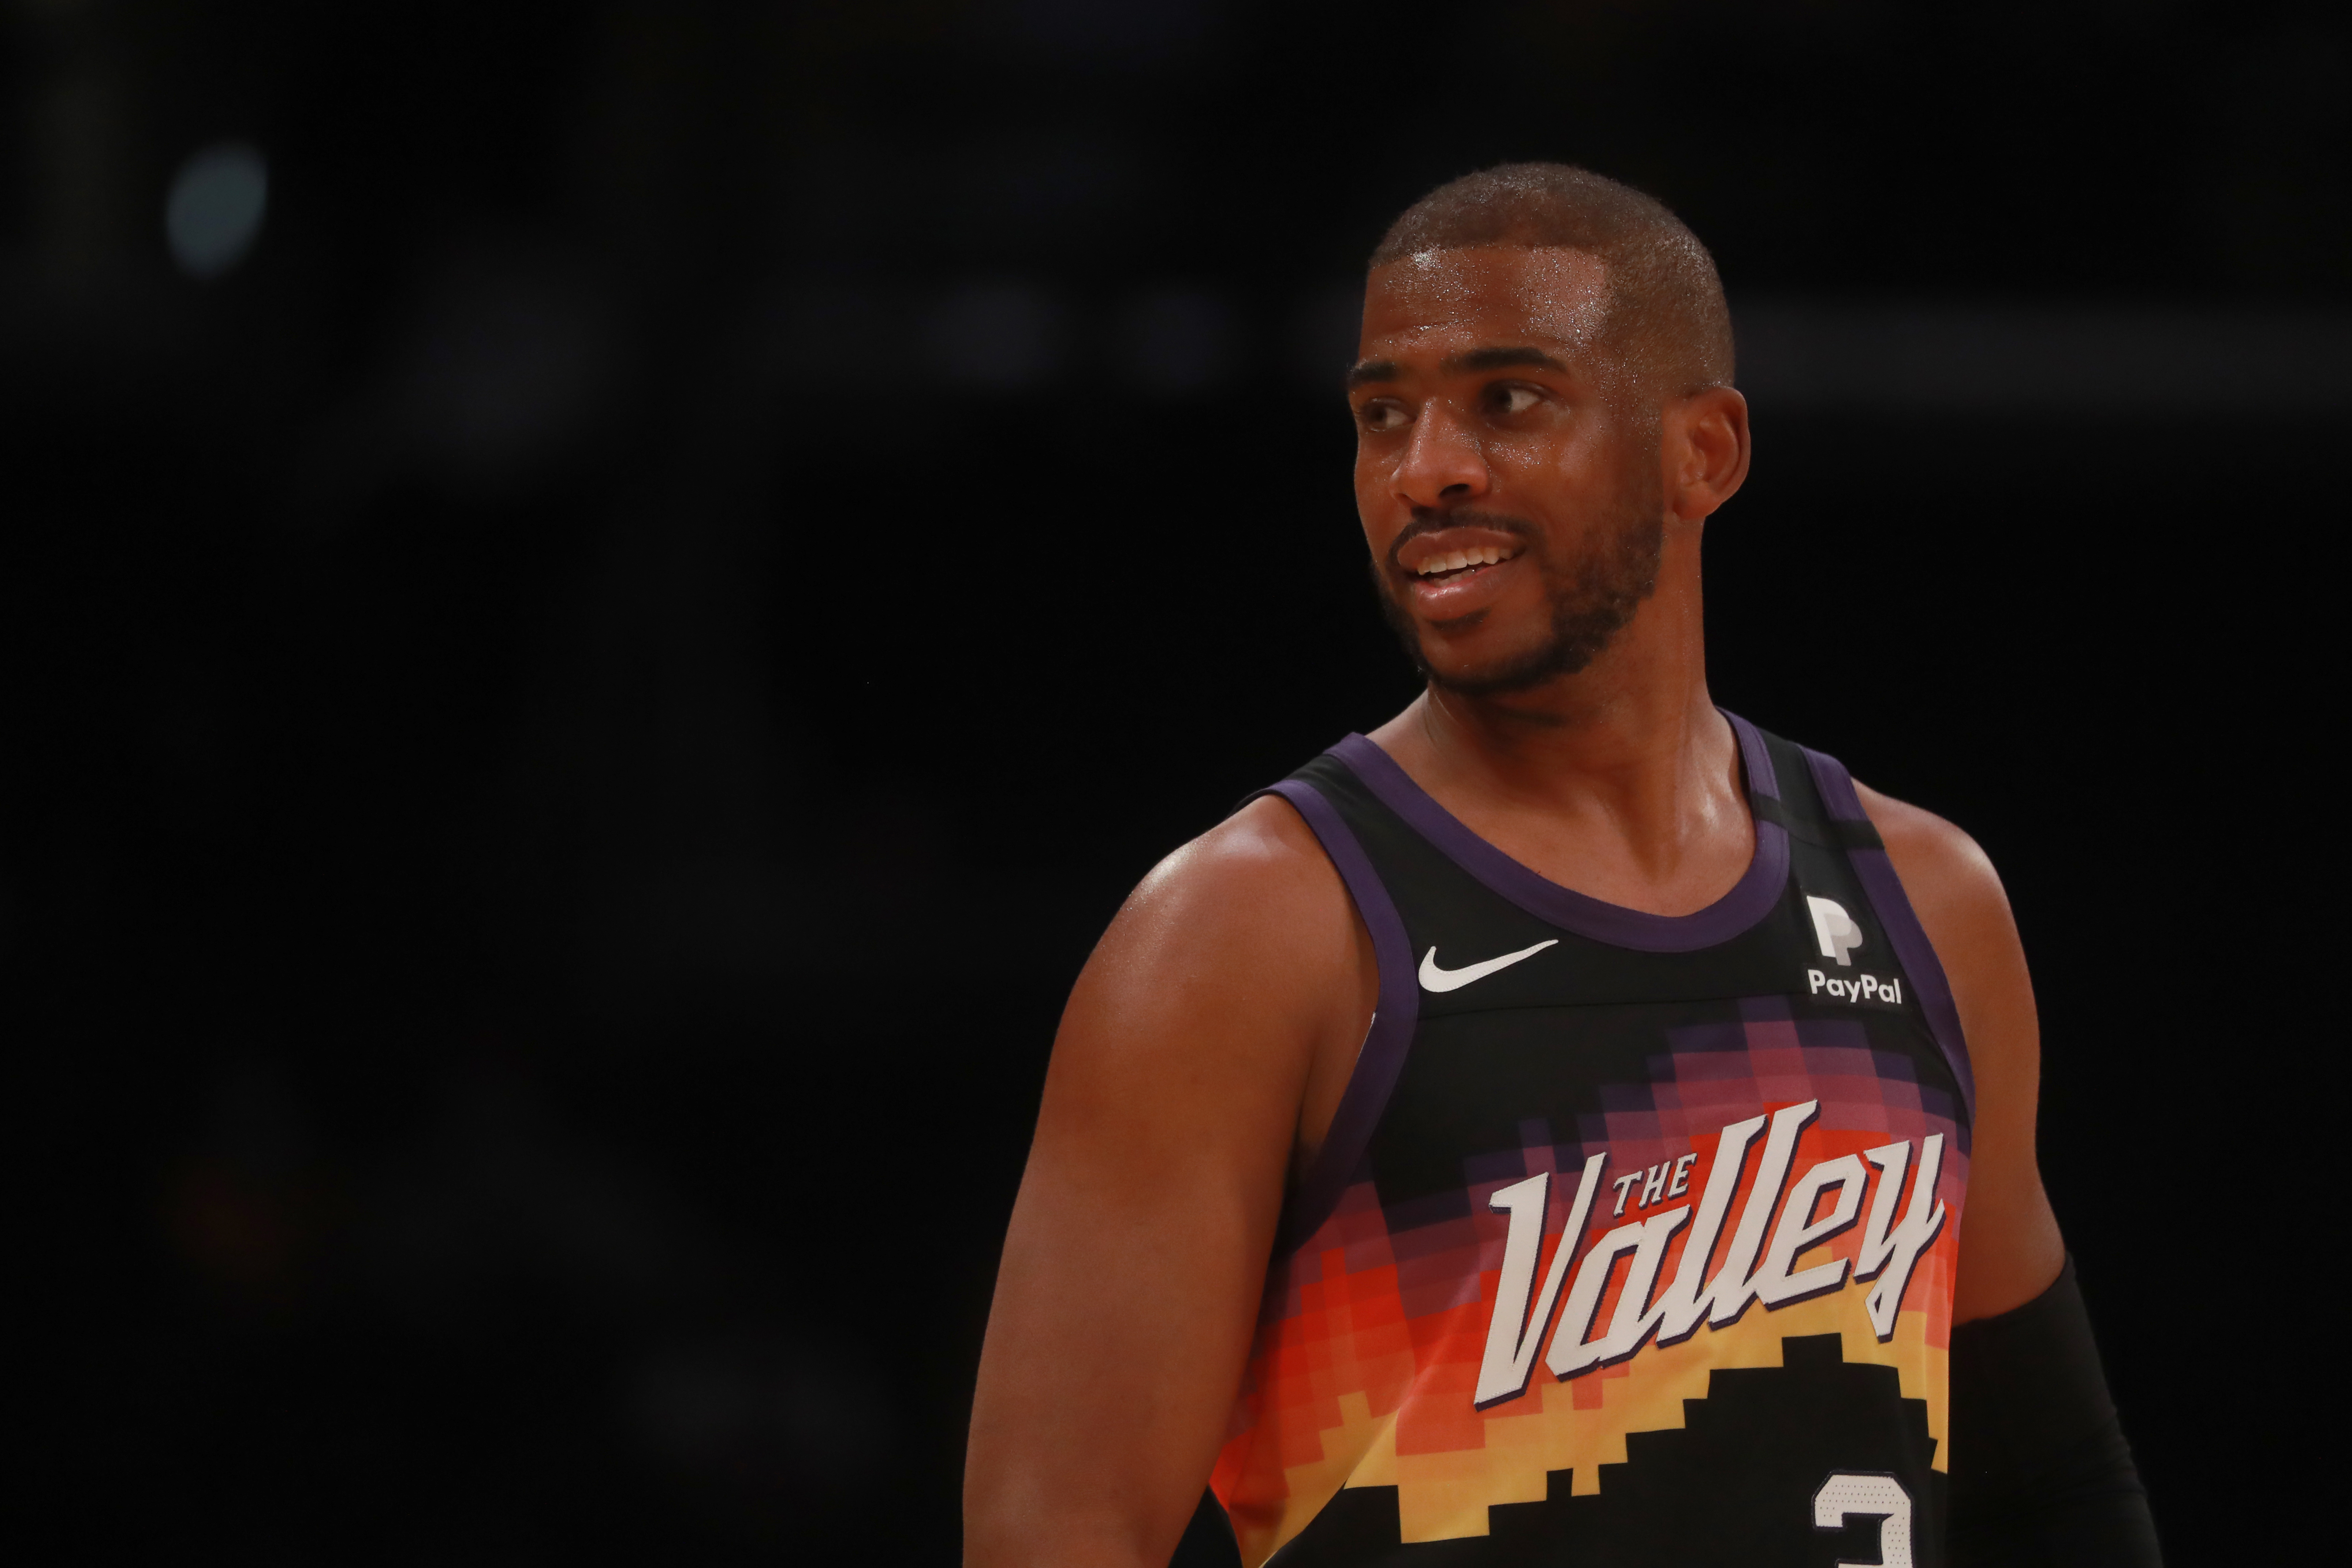 Chris Paul of the Phoenix Suns smiles during the game against the Los Angeles Lakers on May 9, 2021 at STAPLES Center in Los Angeles, California.